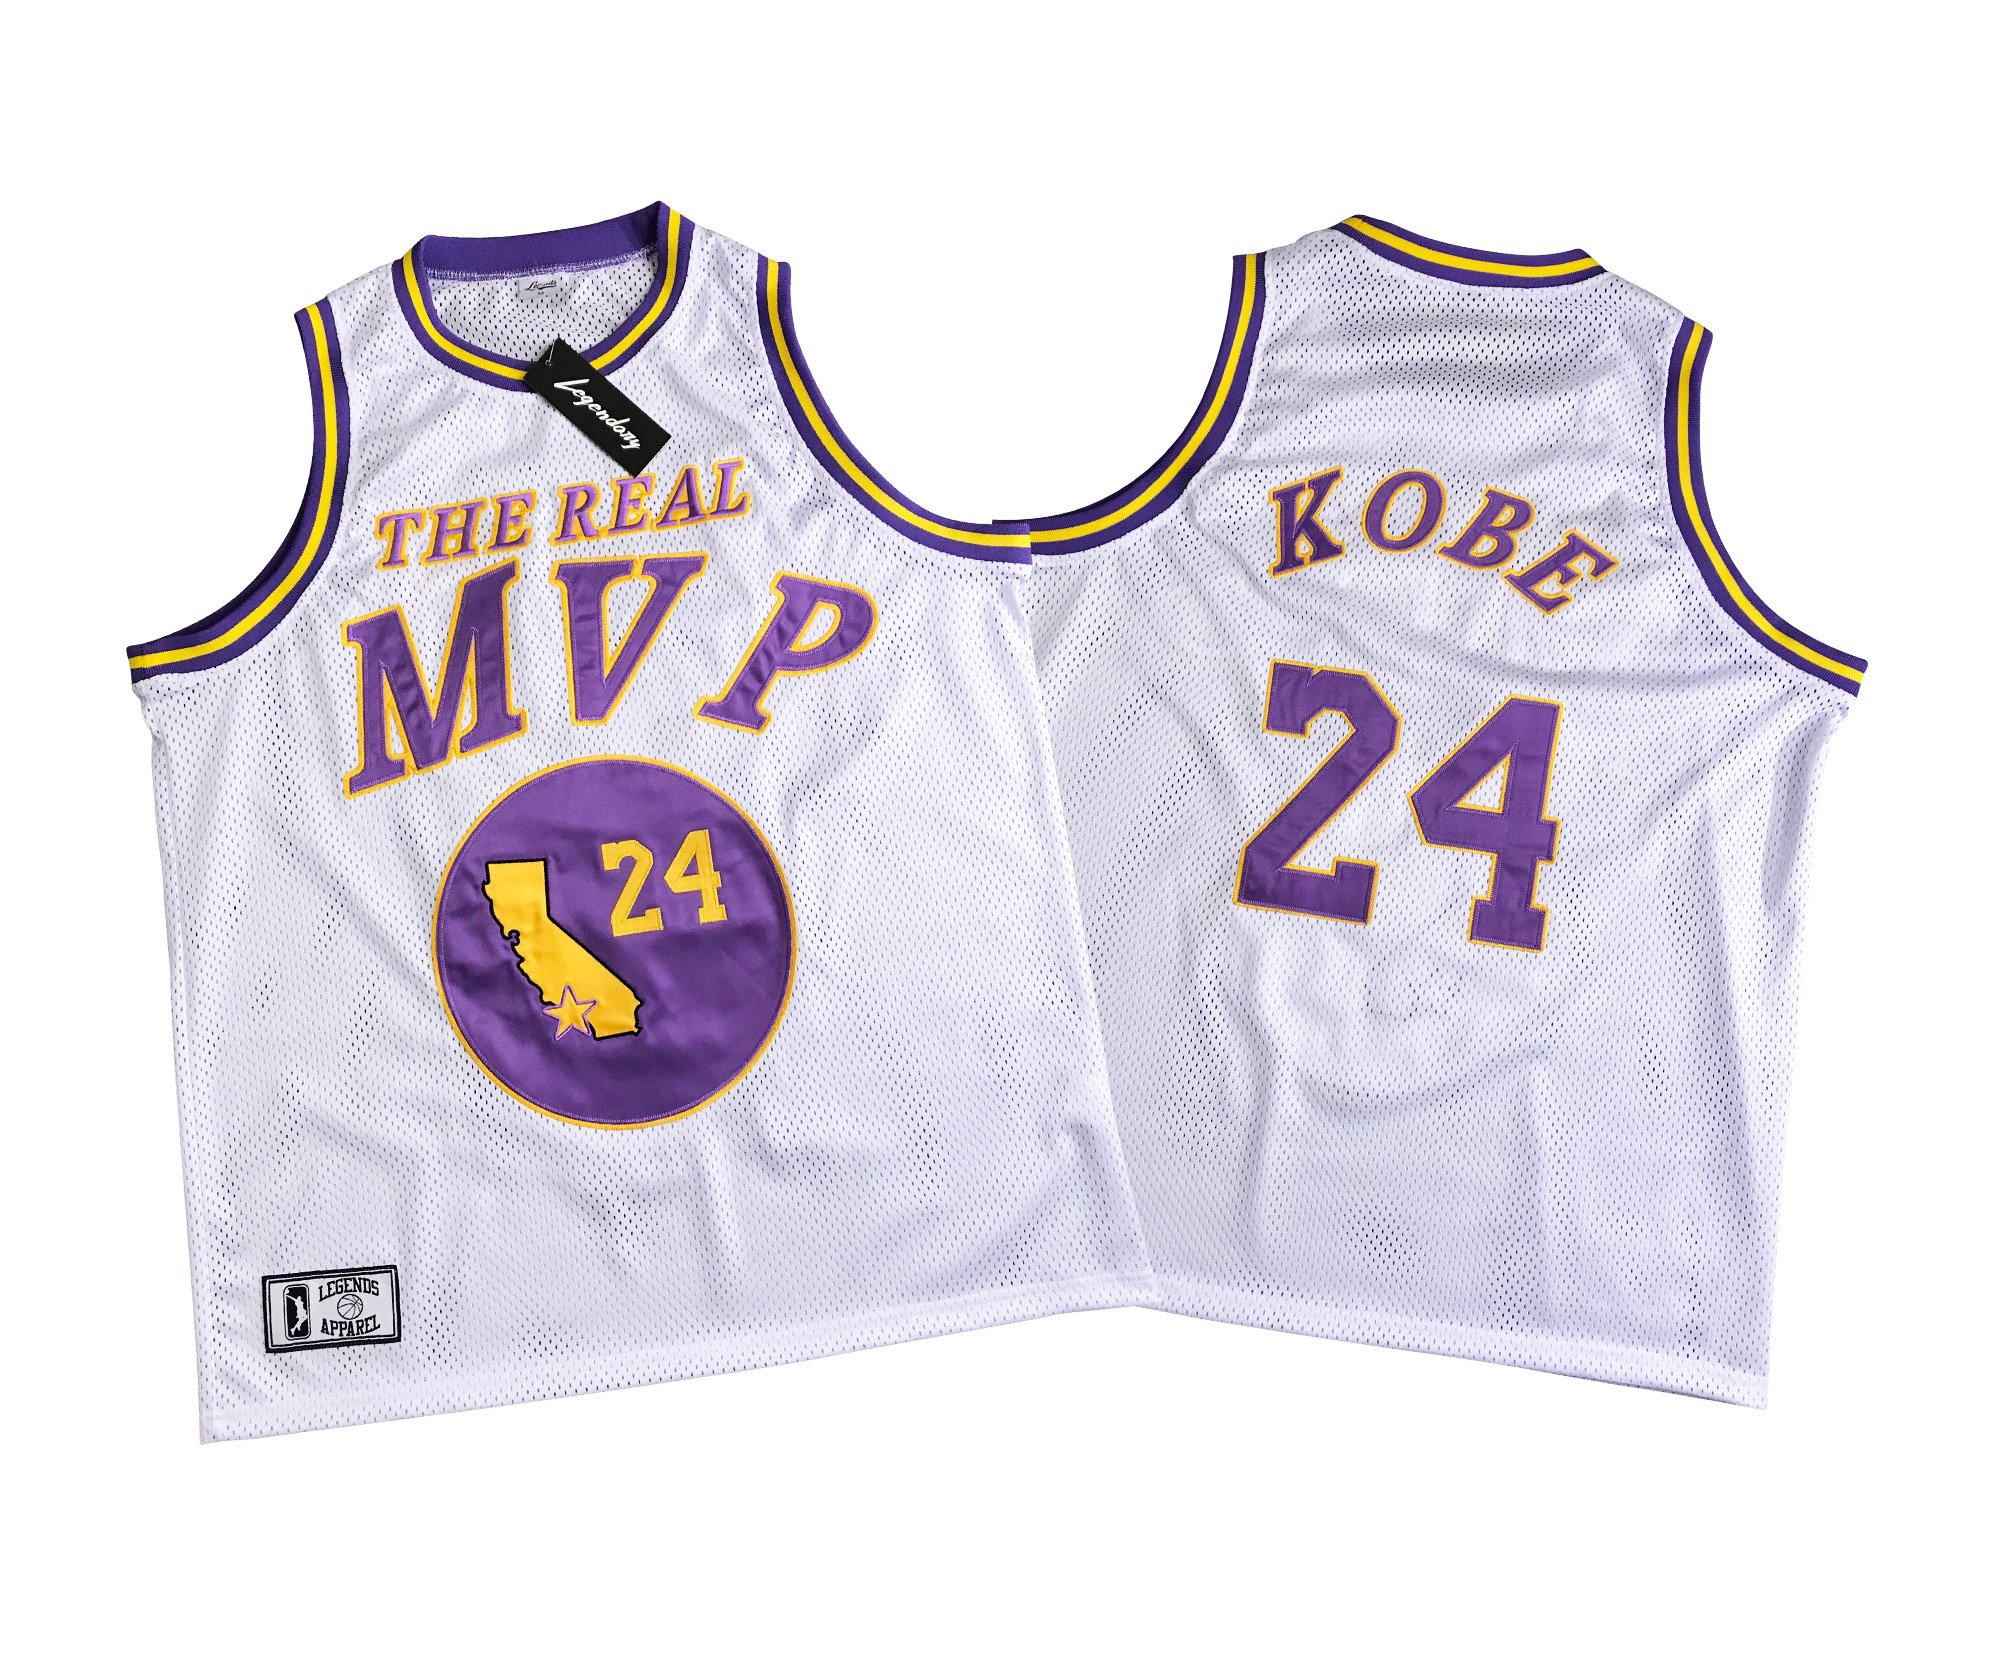 Legends Brand Men's The Real MVP Kobe Jersey Limited Edition (Large)